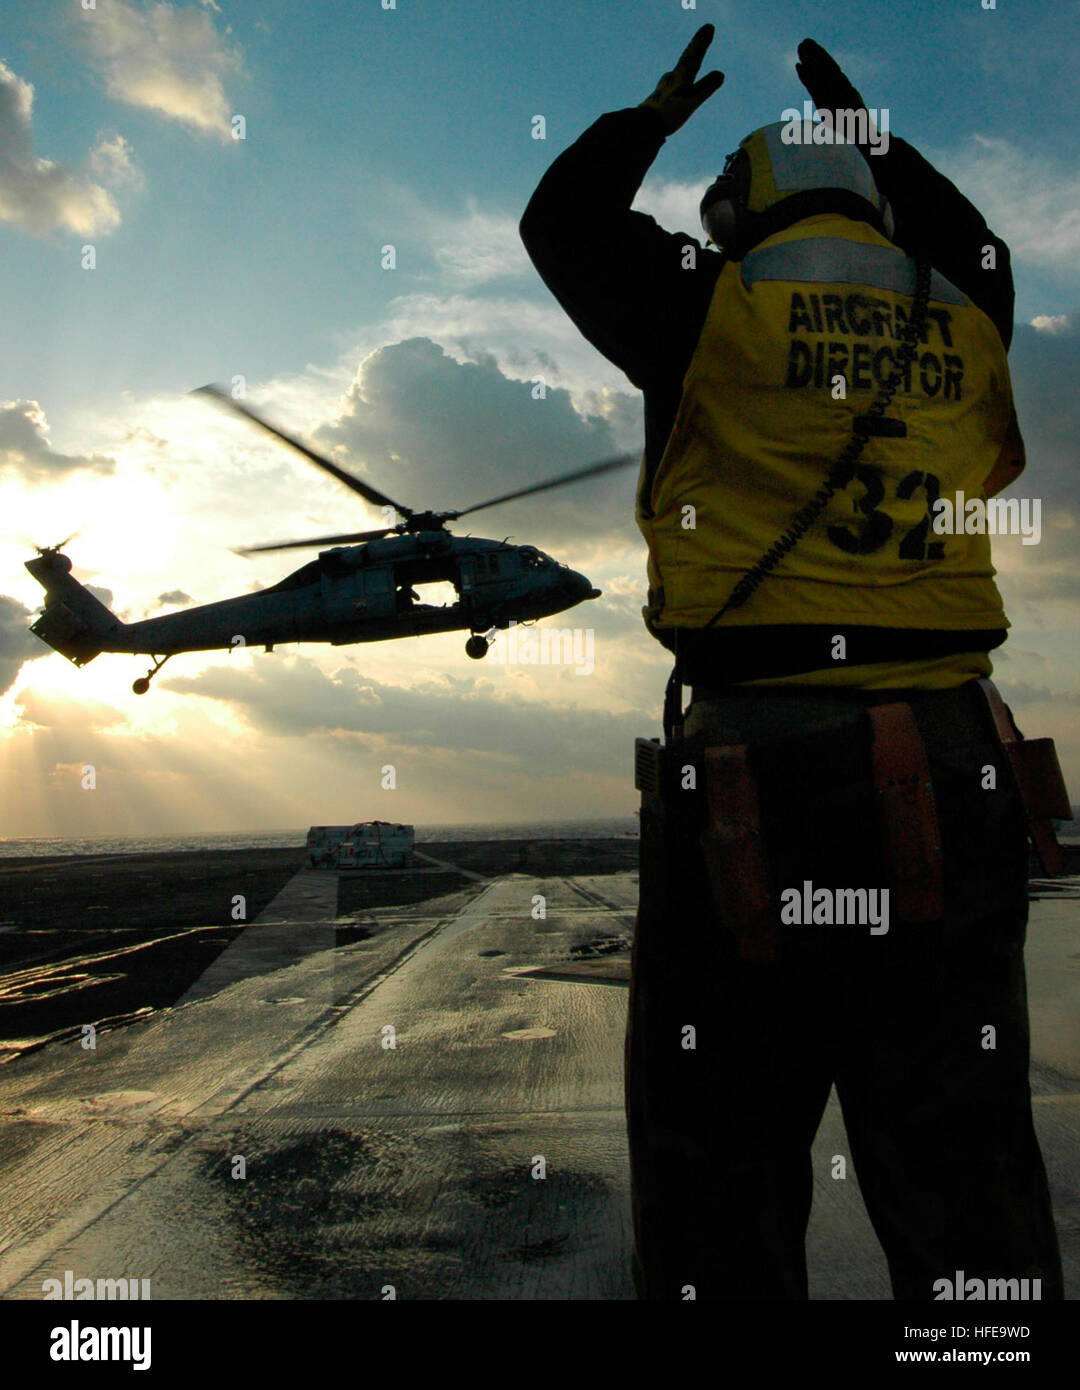 050214-N-5781F-083 Pacific Ocean (Feb. 14, 2005) - An Aviation Boatswain's Mate directs an MH-60S Seahawk helicopter - Stock Image